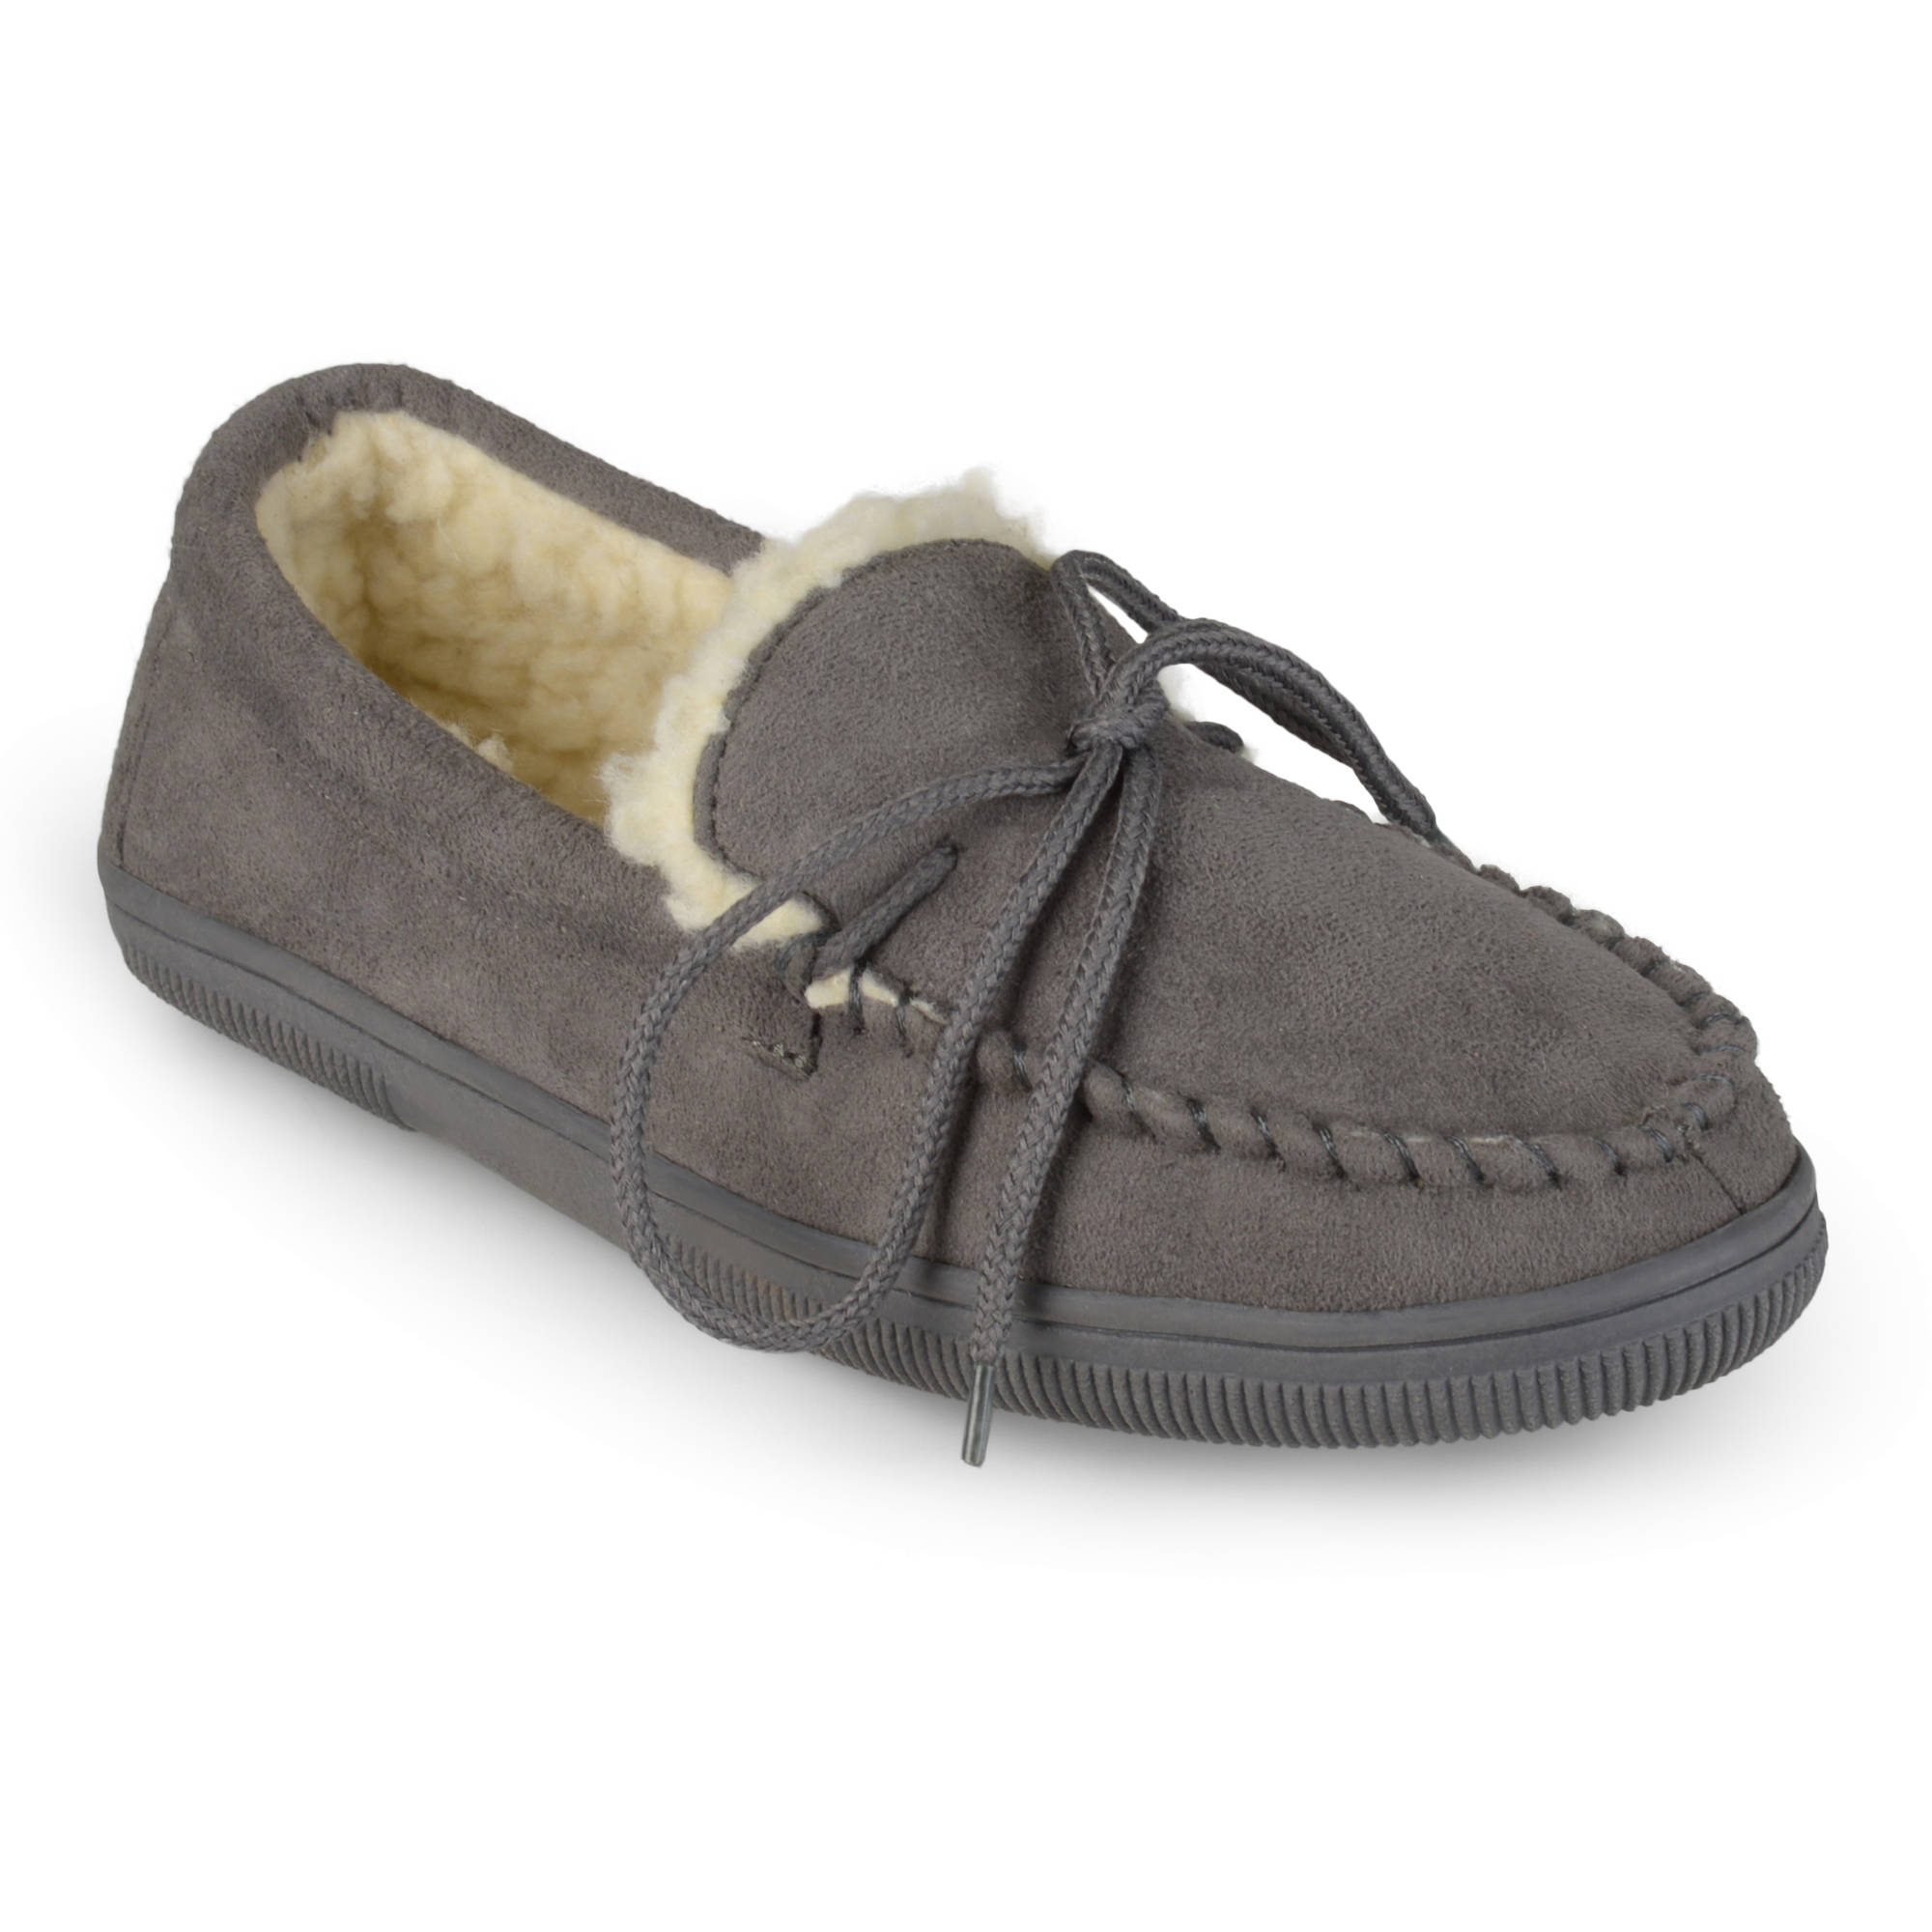 shopping ladies wool on new guides bedroom kyrgyz shoes and find deals line size womens mens cheap for felt handmade house slippers